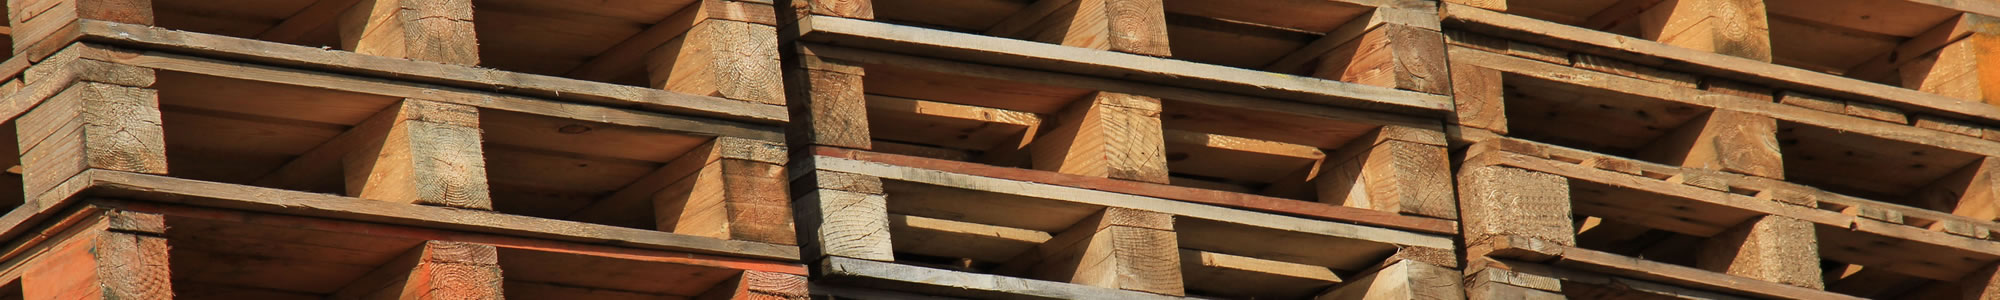 banner-used-timber-pallets